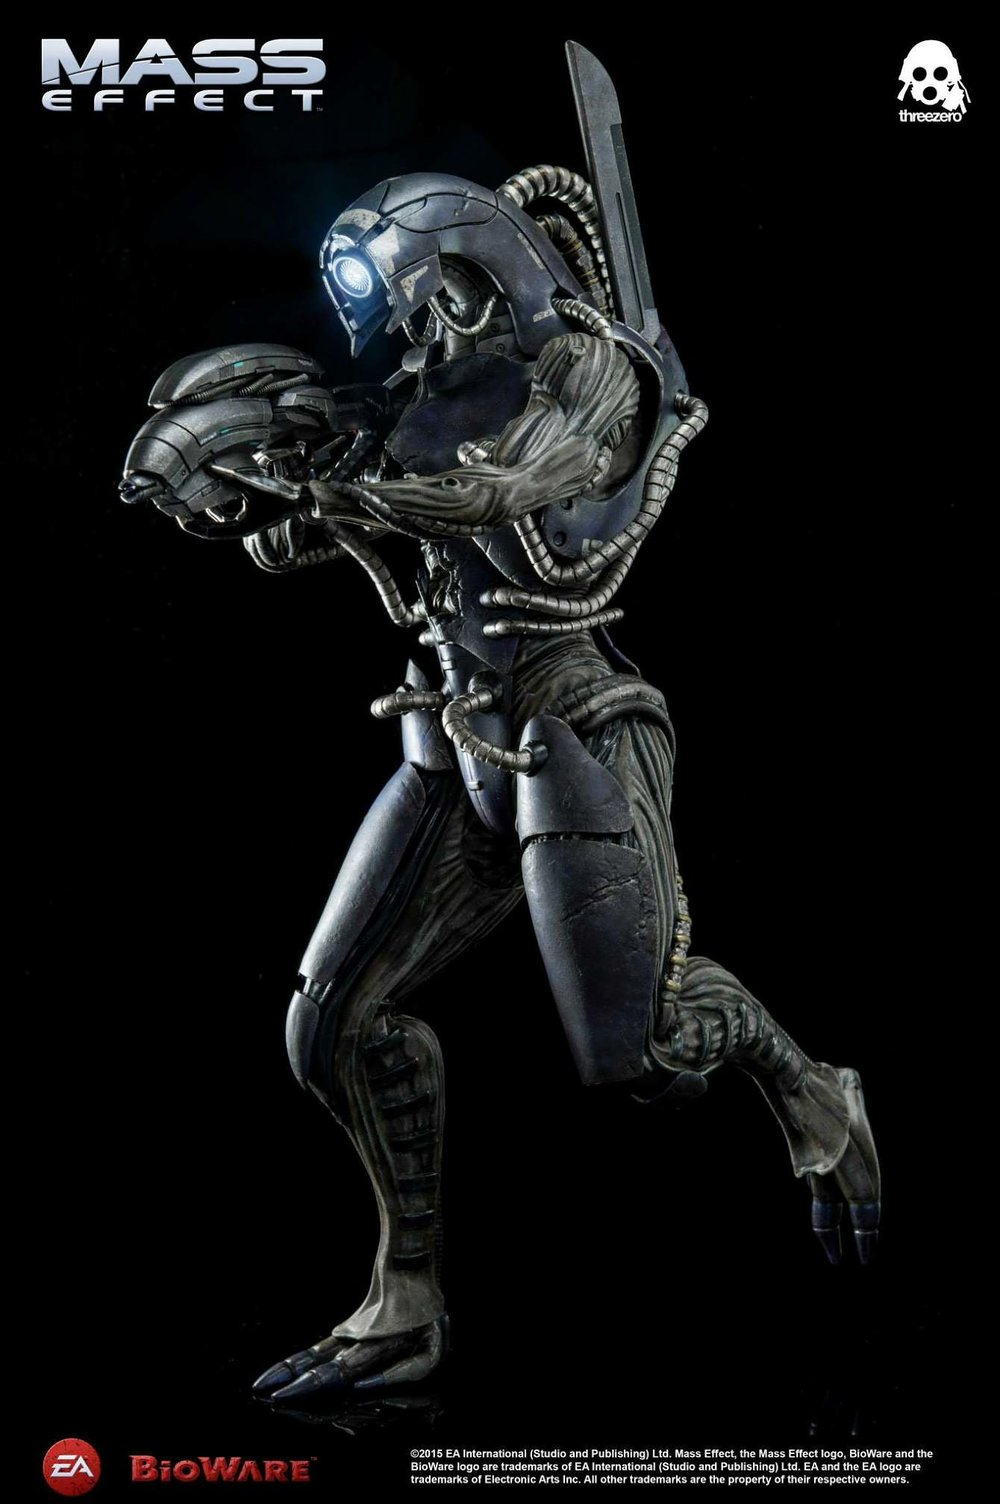 ThreeZero-Bioware-video-game-Legion-Mass-Effect-figure-17_1340_c.jpg